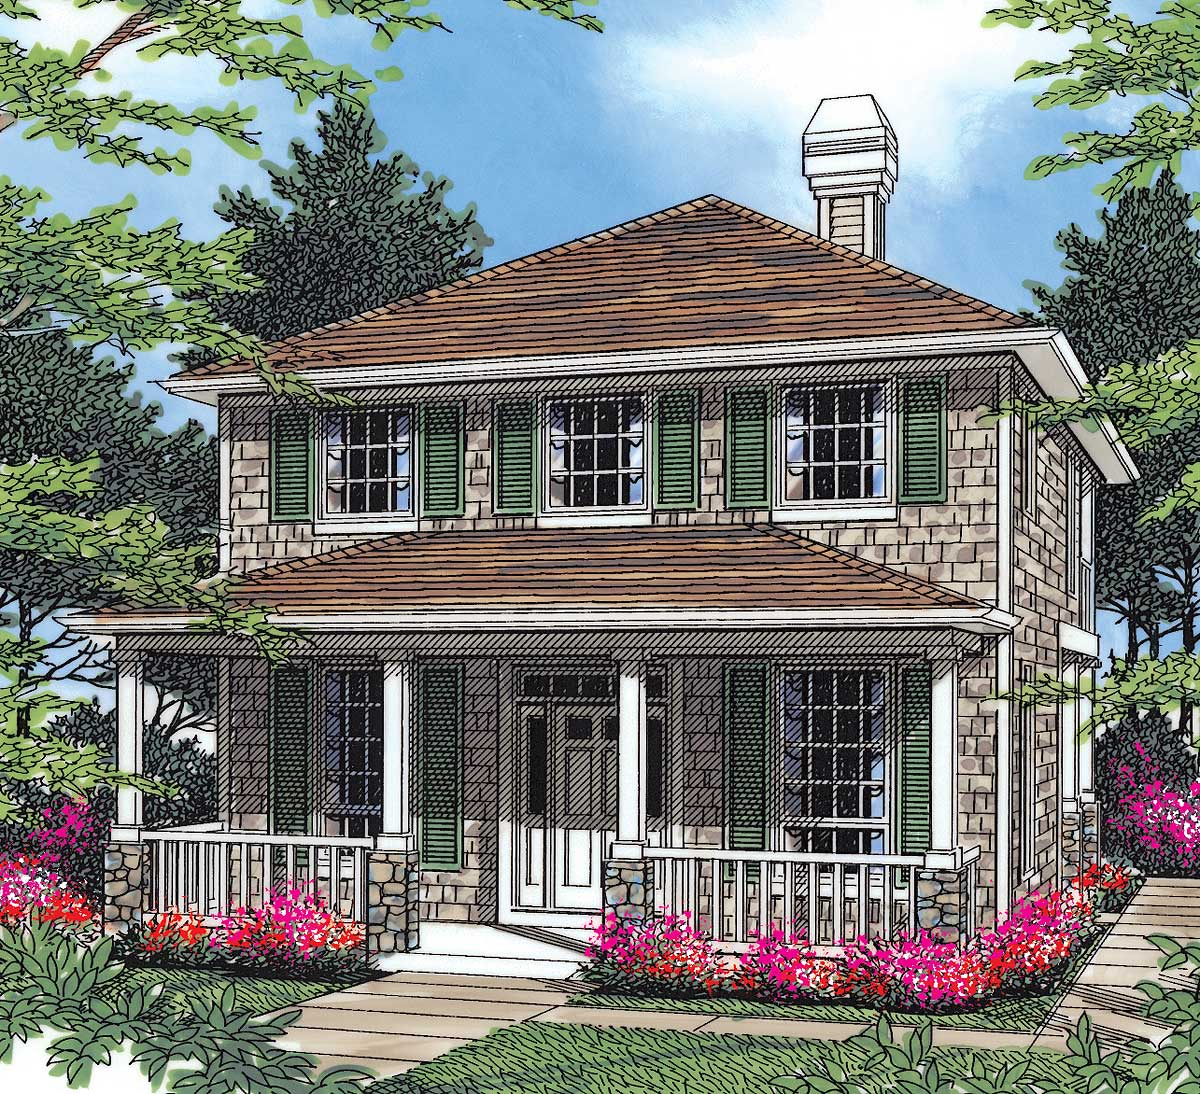 Traditional Plan With Two Story Great Room - 69284am